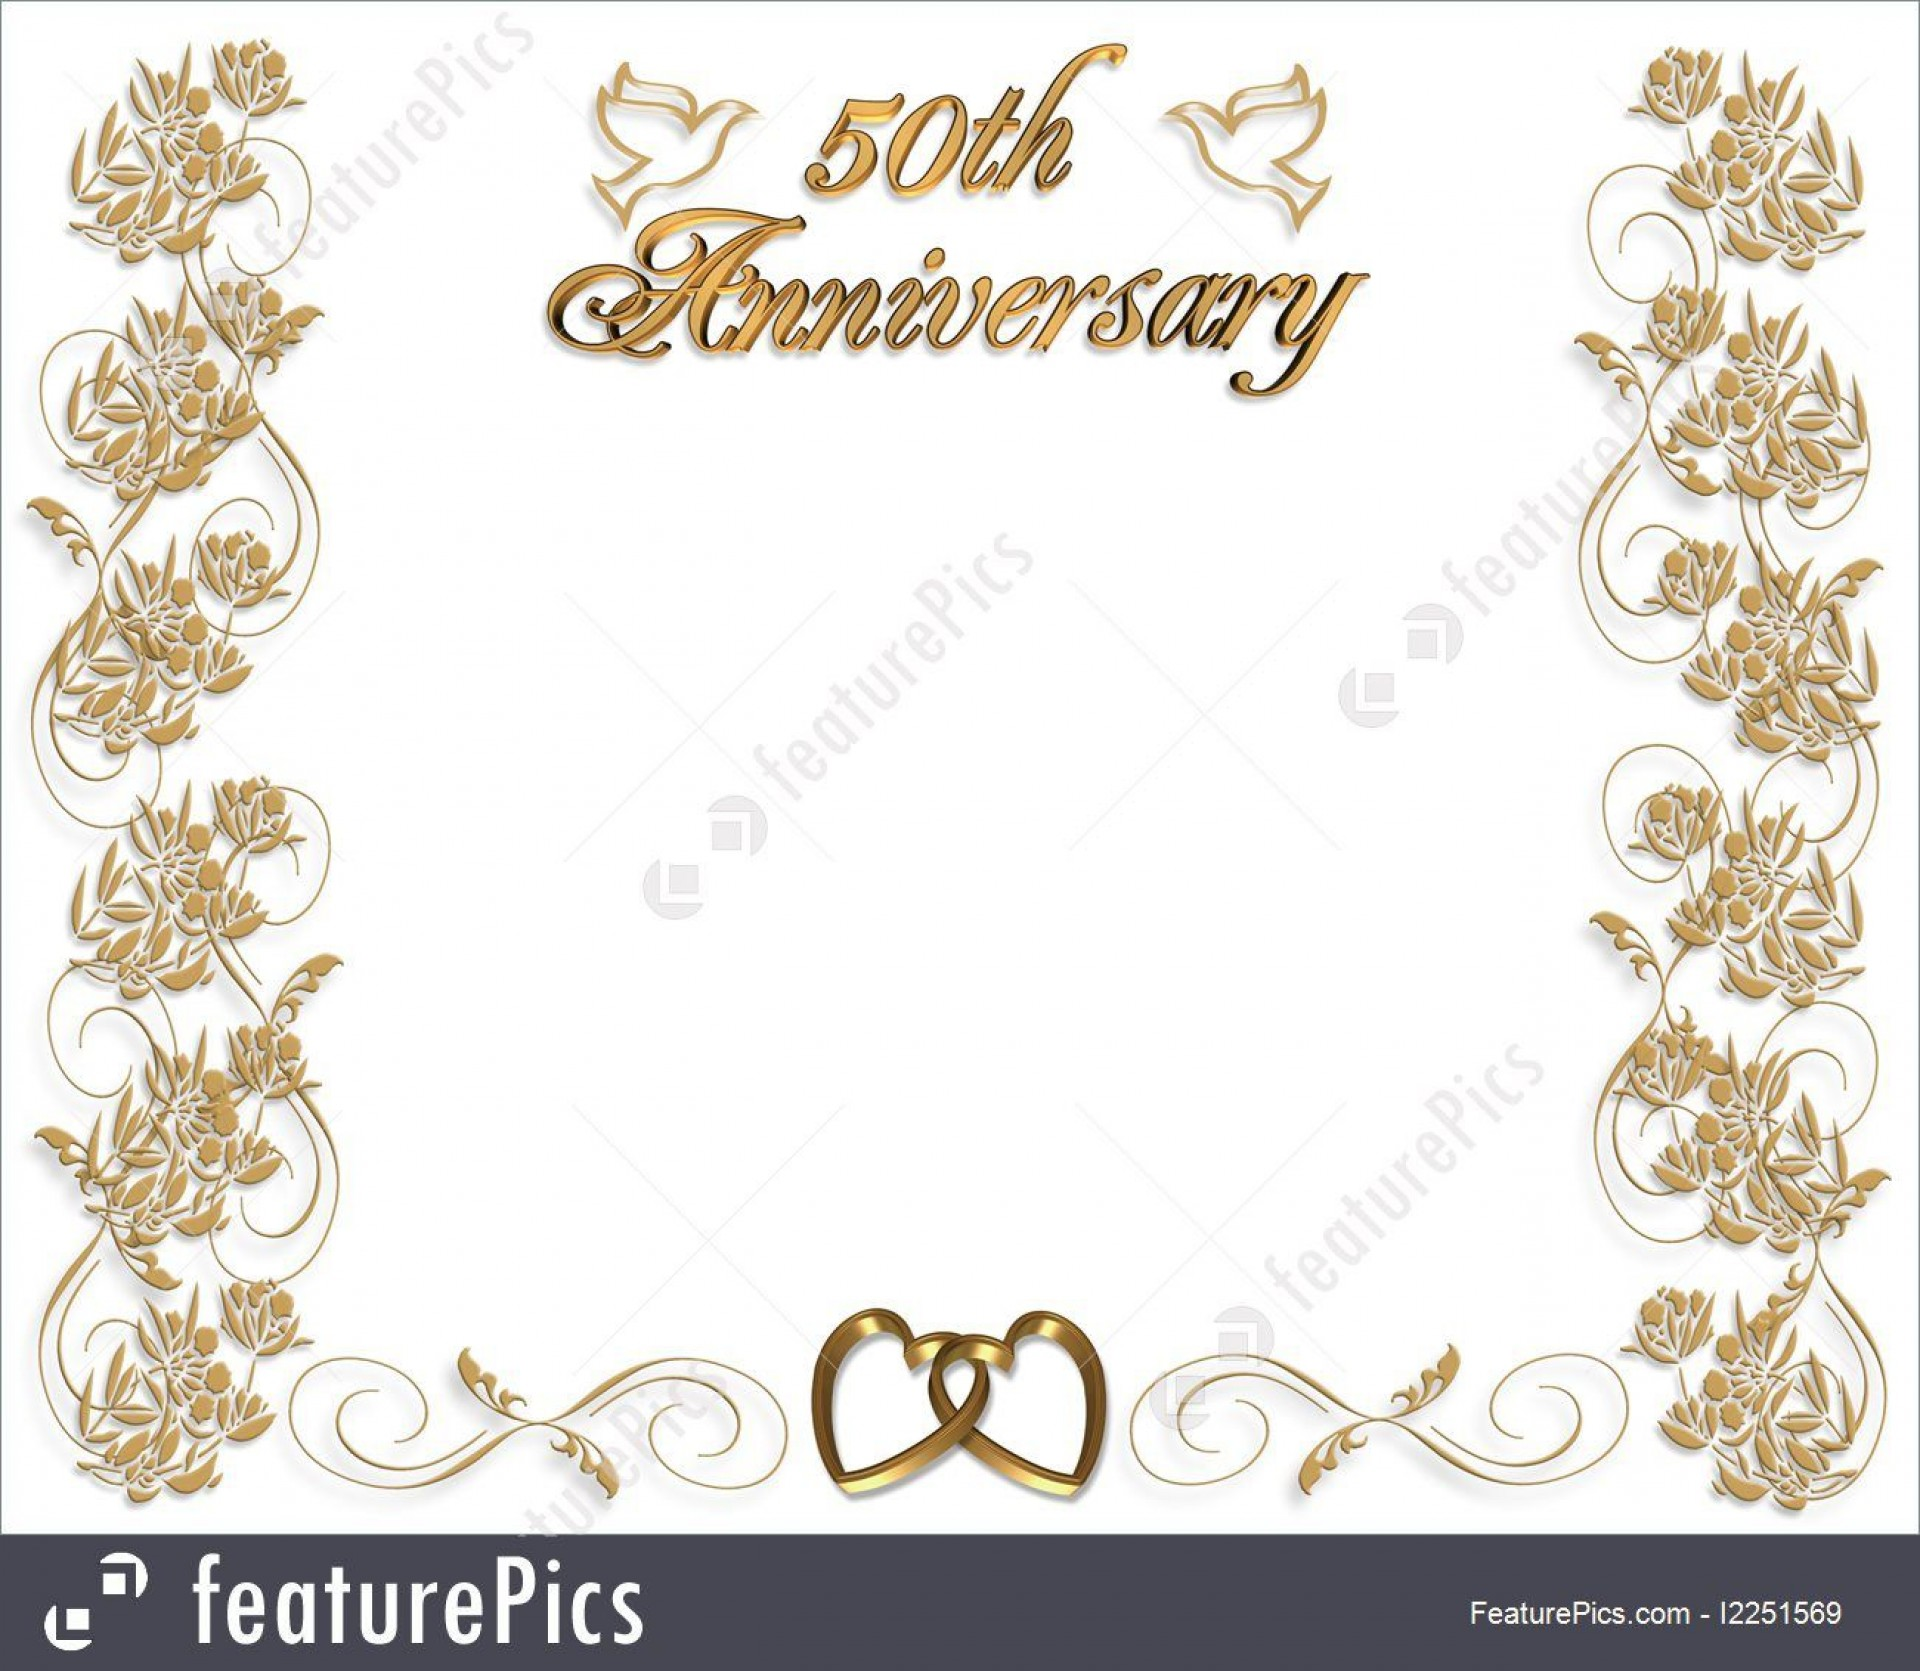 010 Outstanding 50th Anniversary Invitation Card Template High Resolution  Templates Free1920